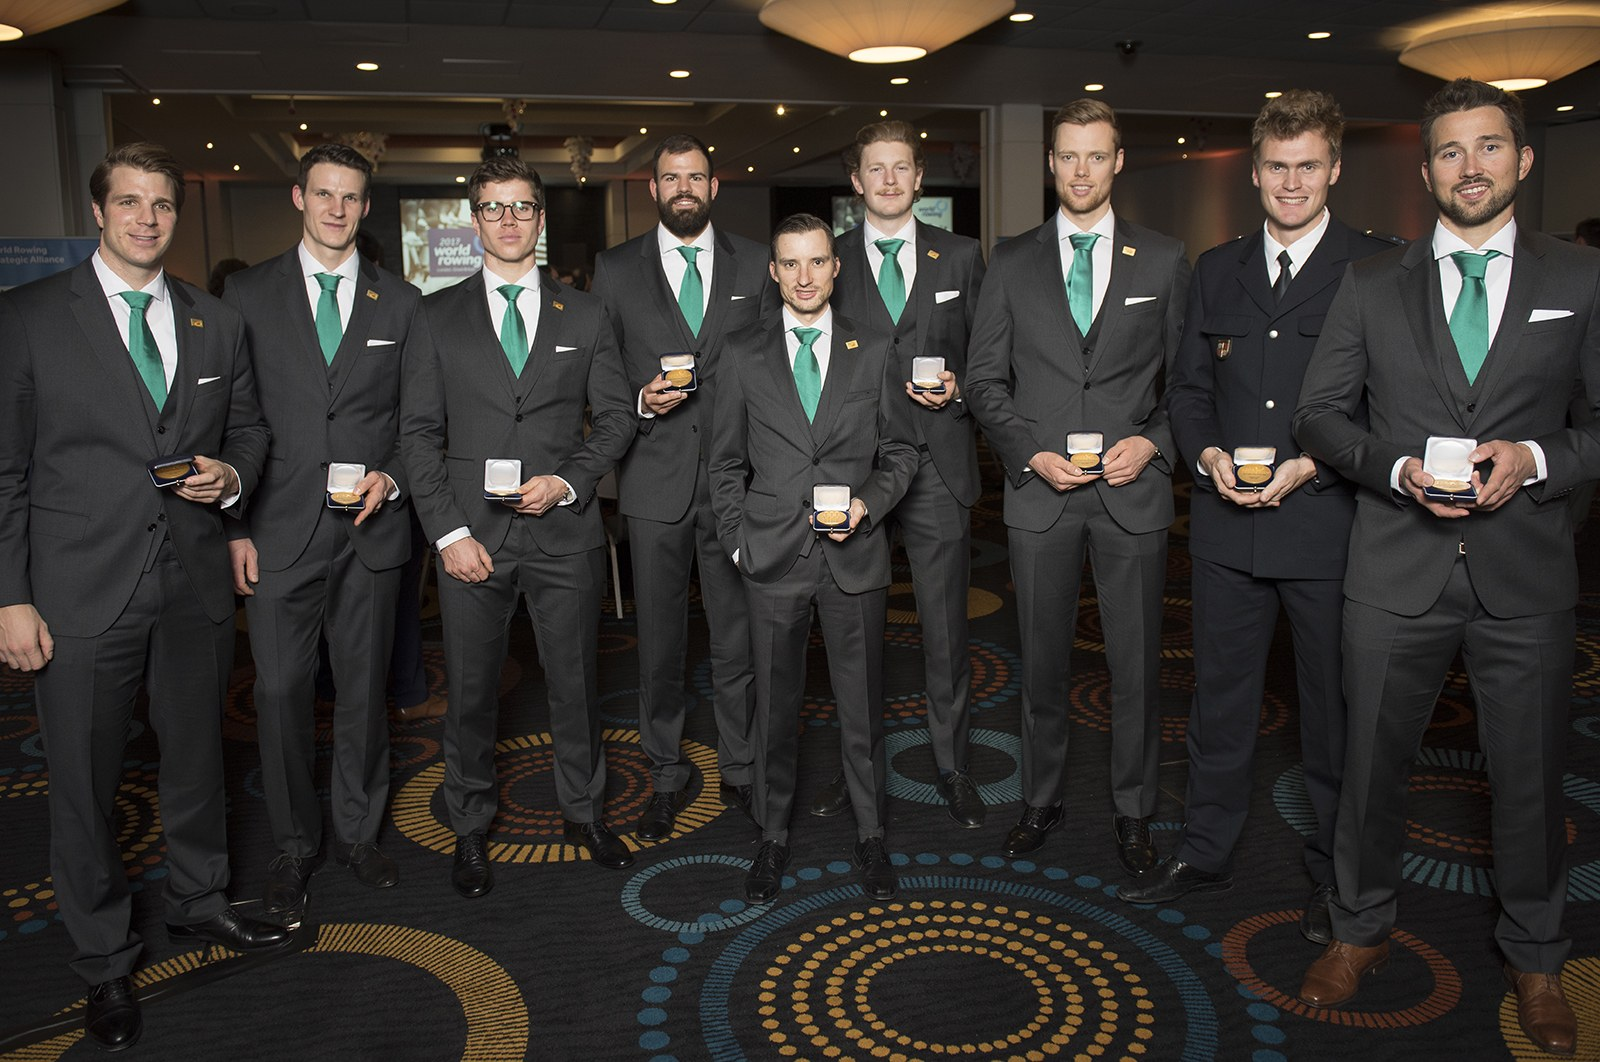 Deutschland Achter (World Rowing Male Crew of the Year)